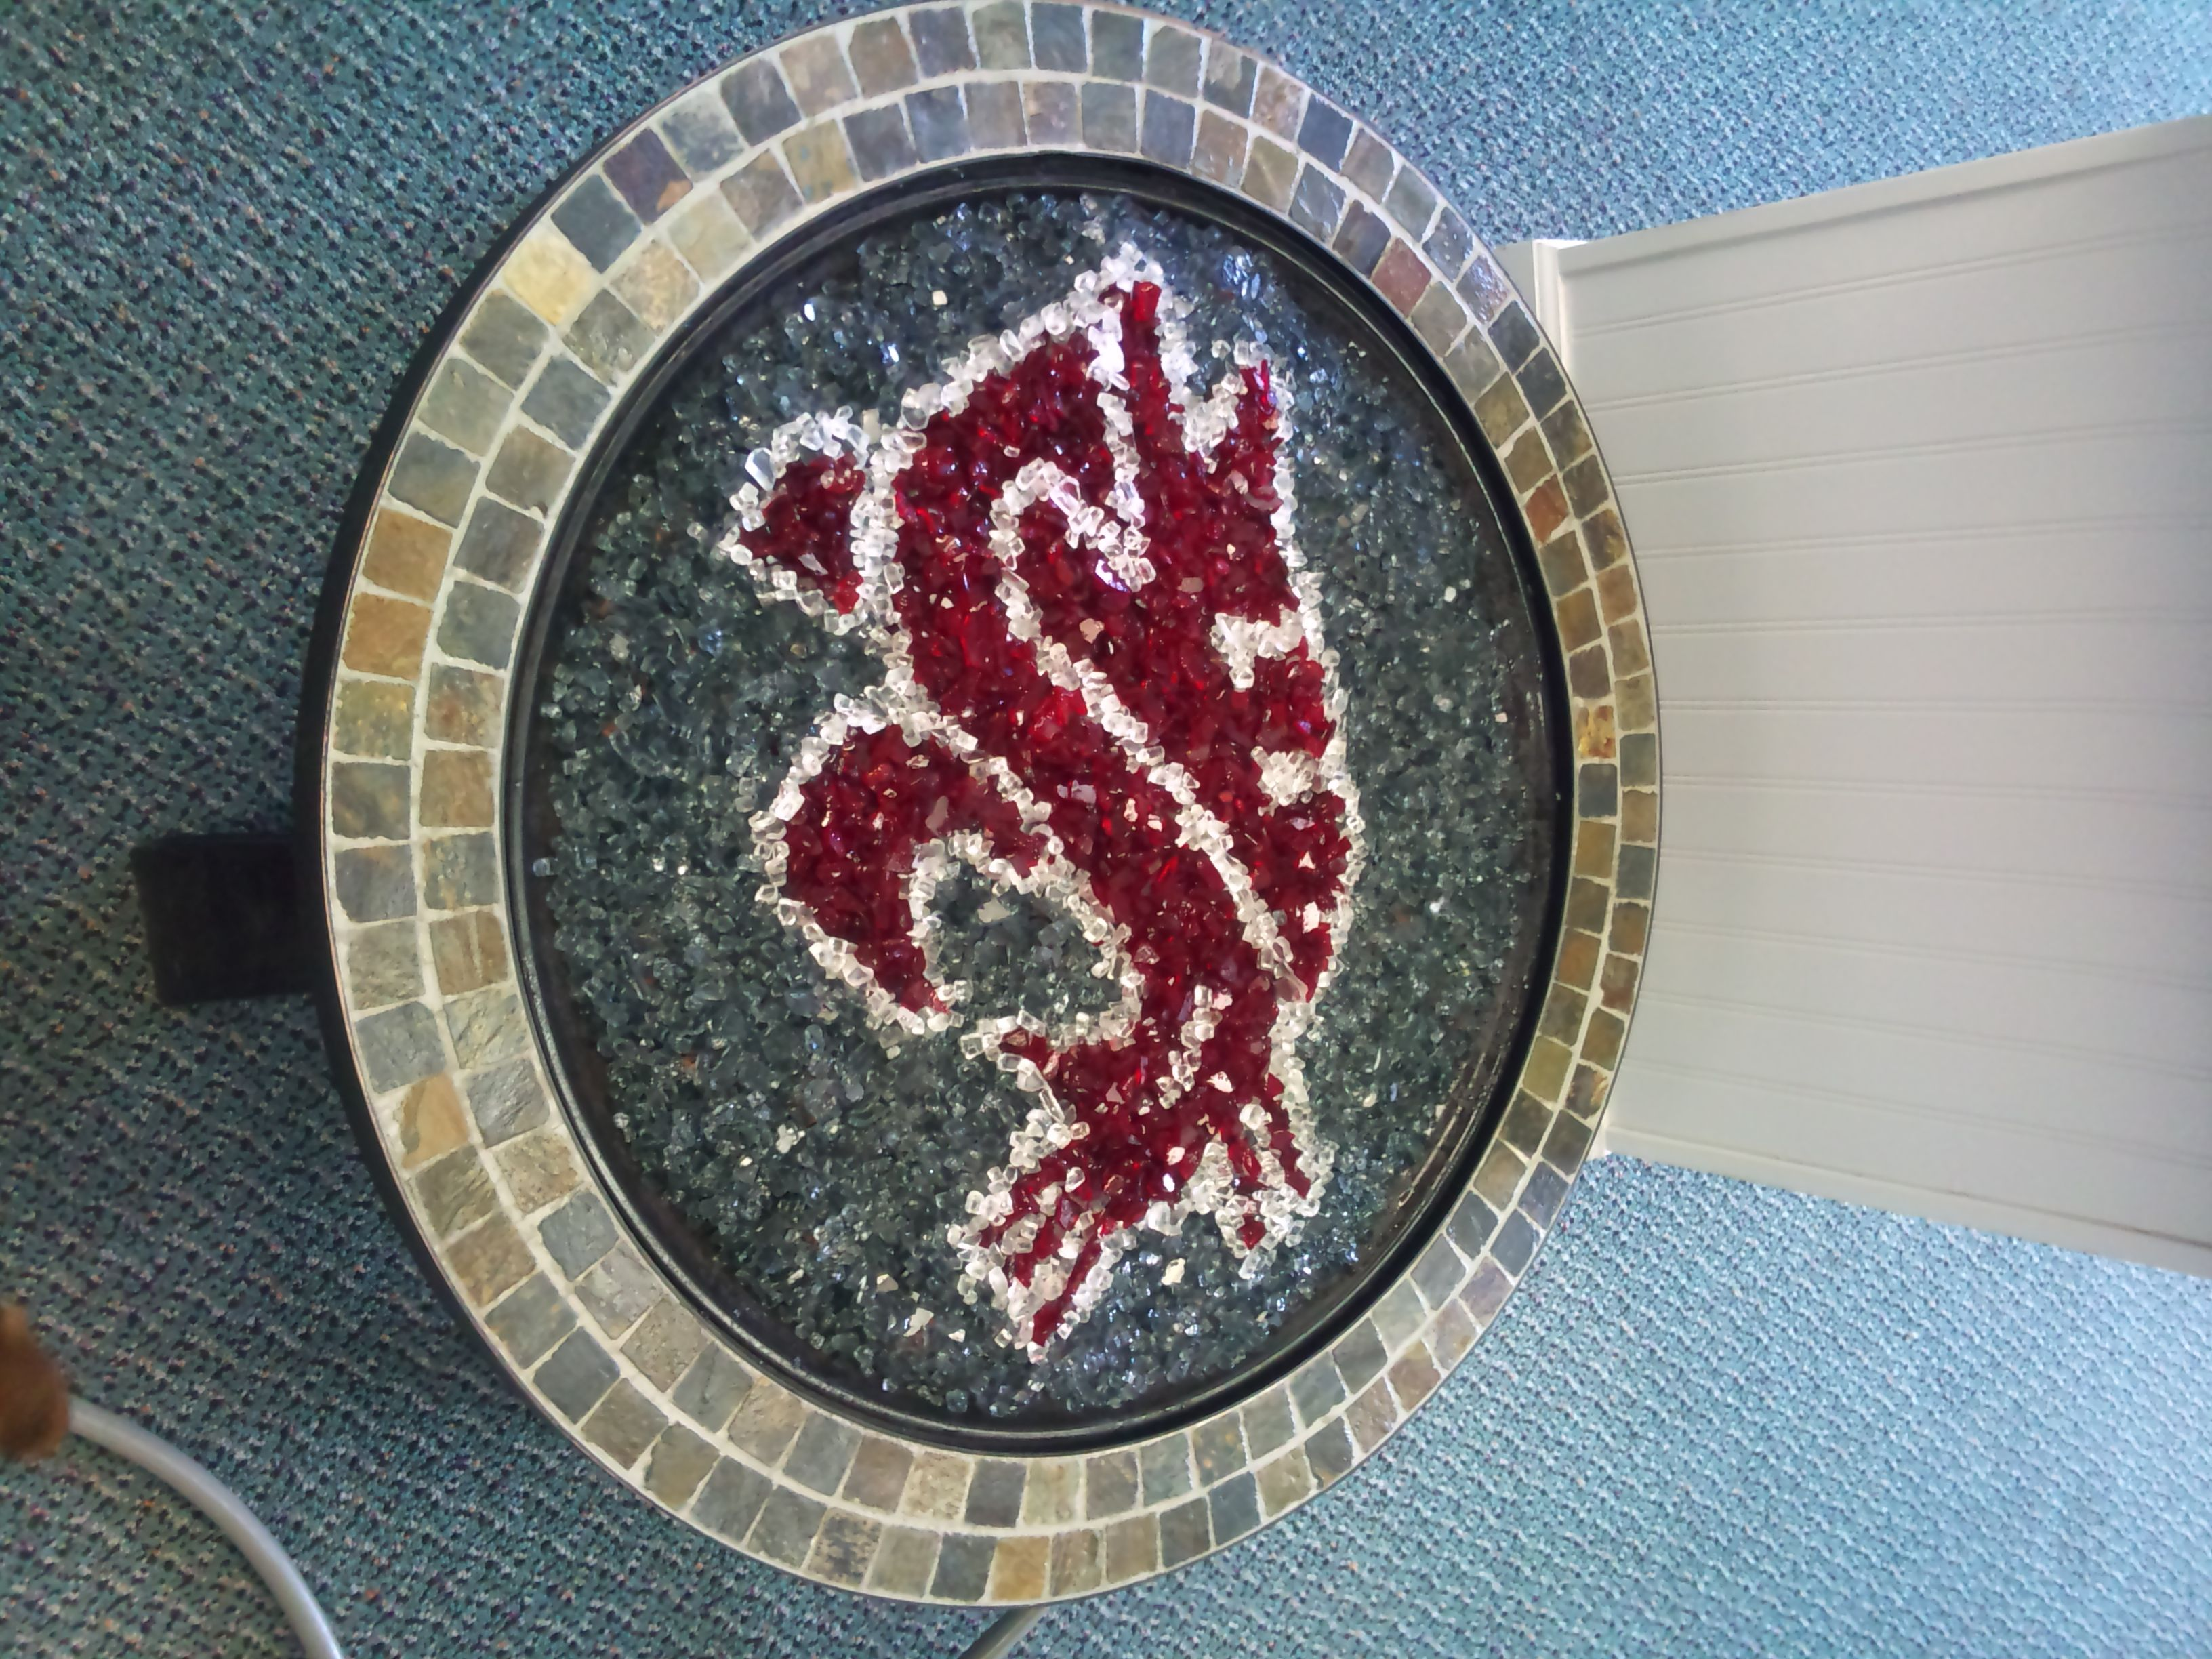 Washington State Cougars Wsu Fire Pit Heating And Air Conditioning